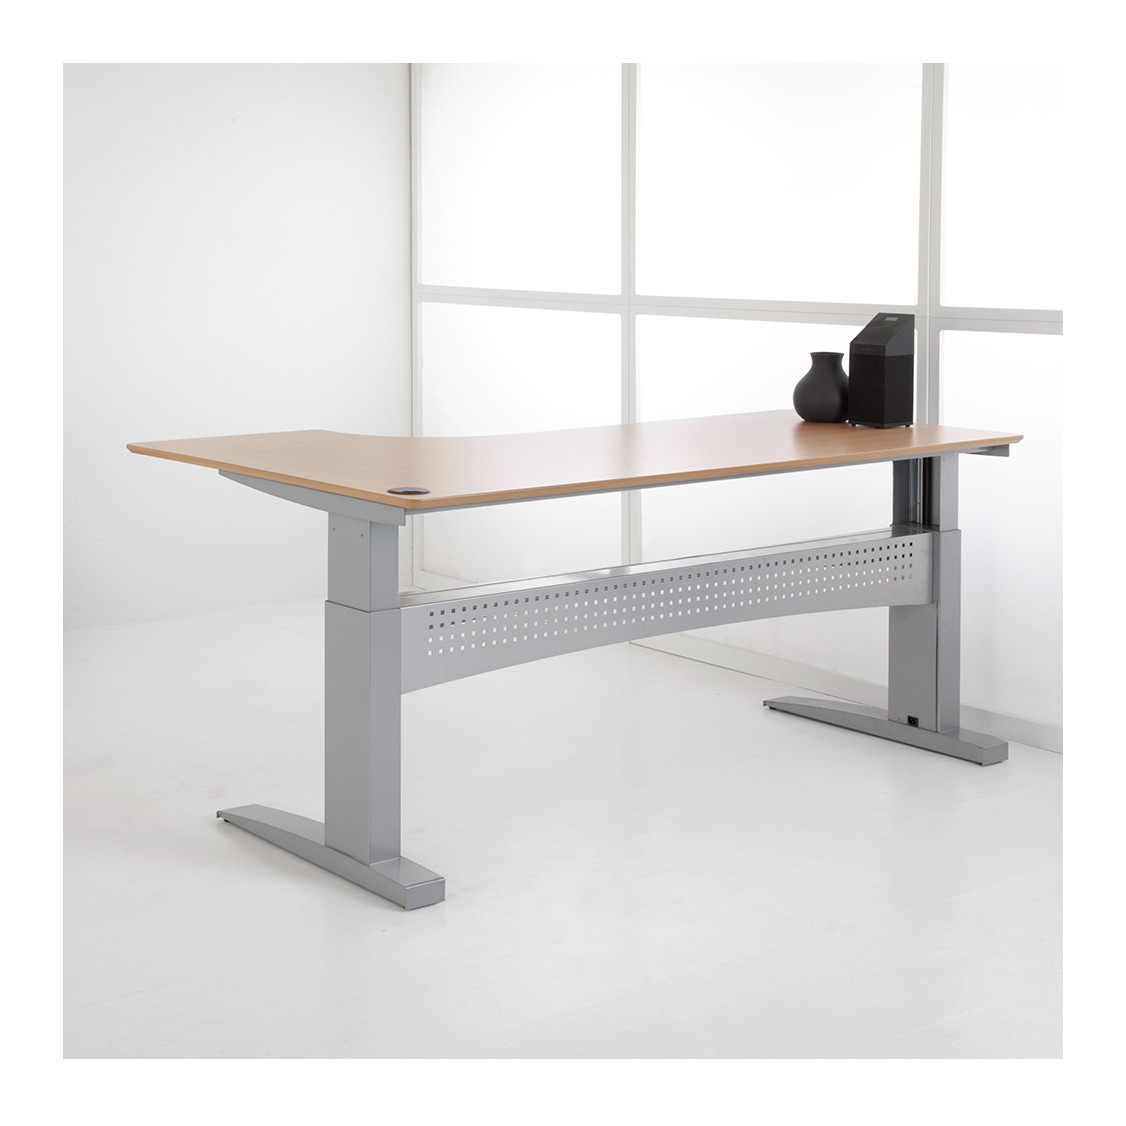 ad111hd adjustable height desk ... QKNLVBH